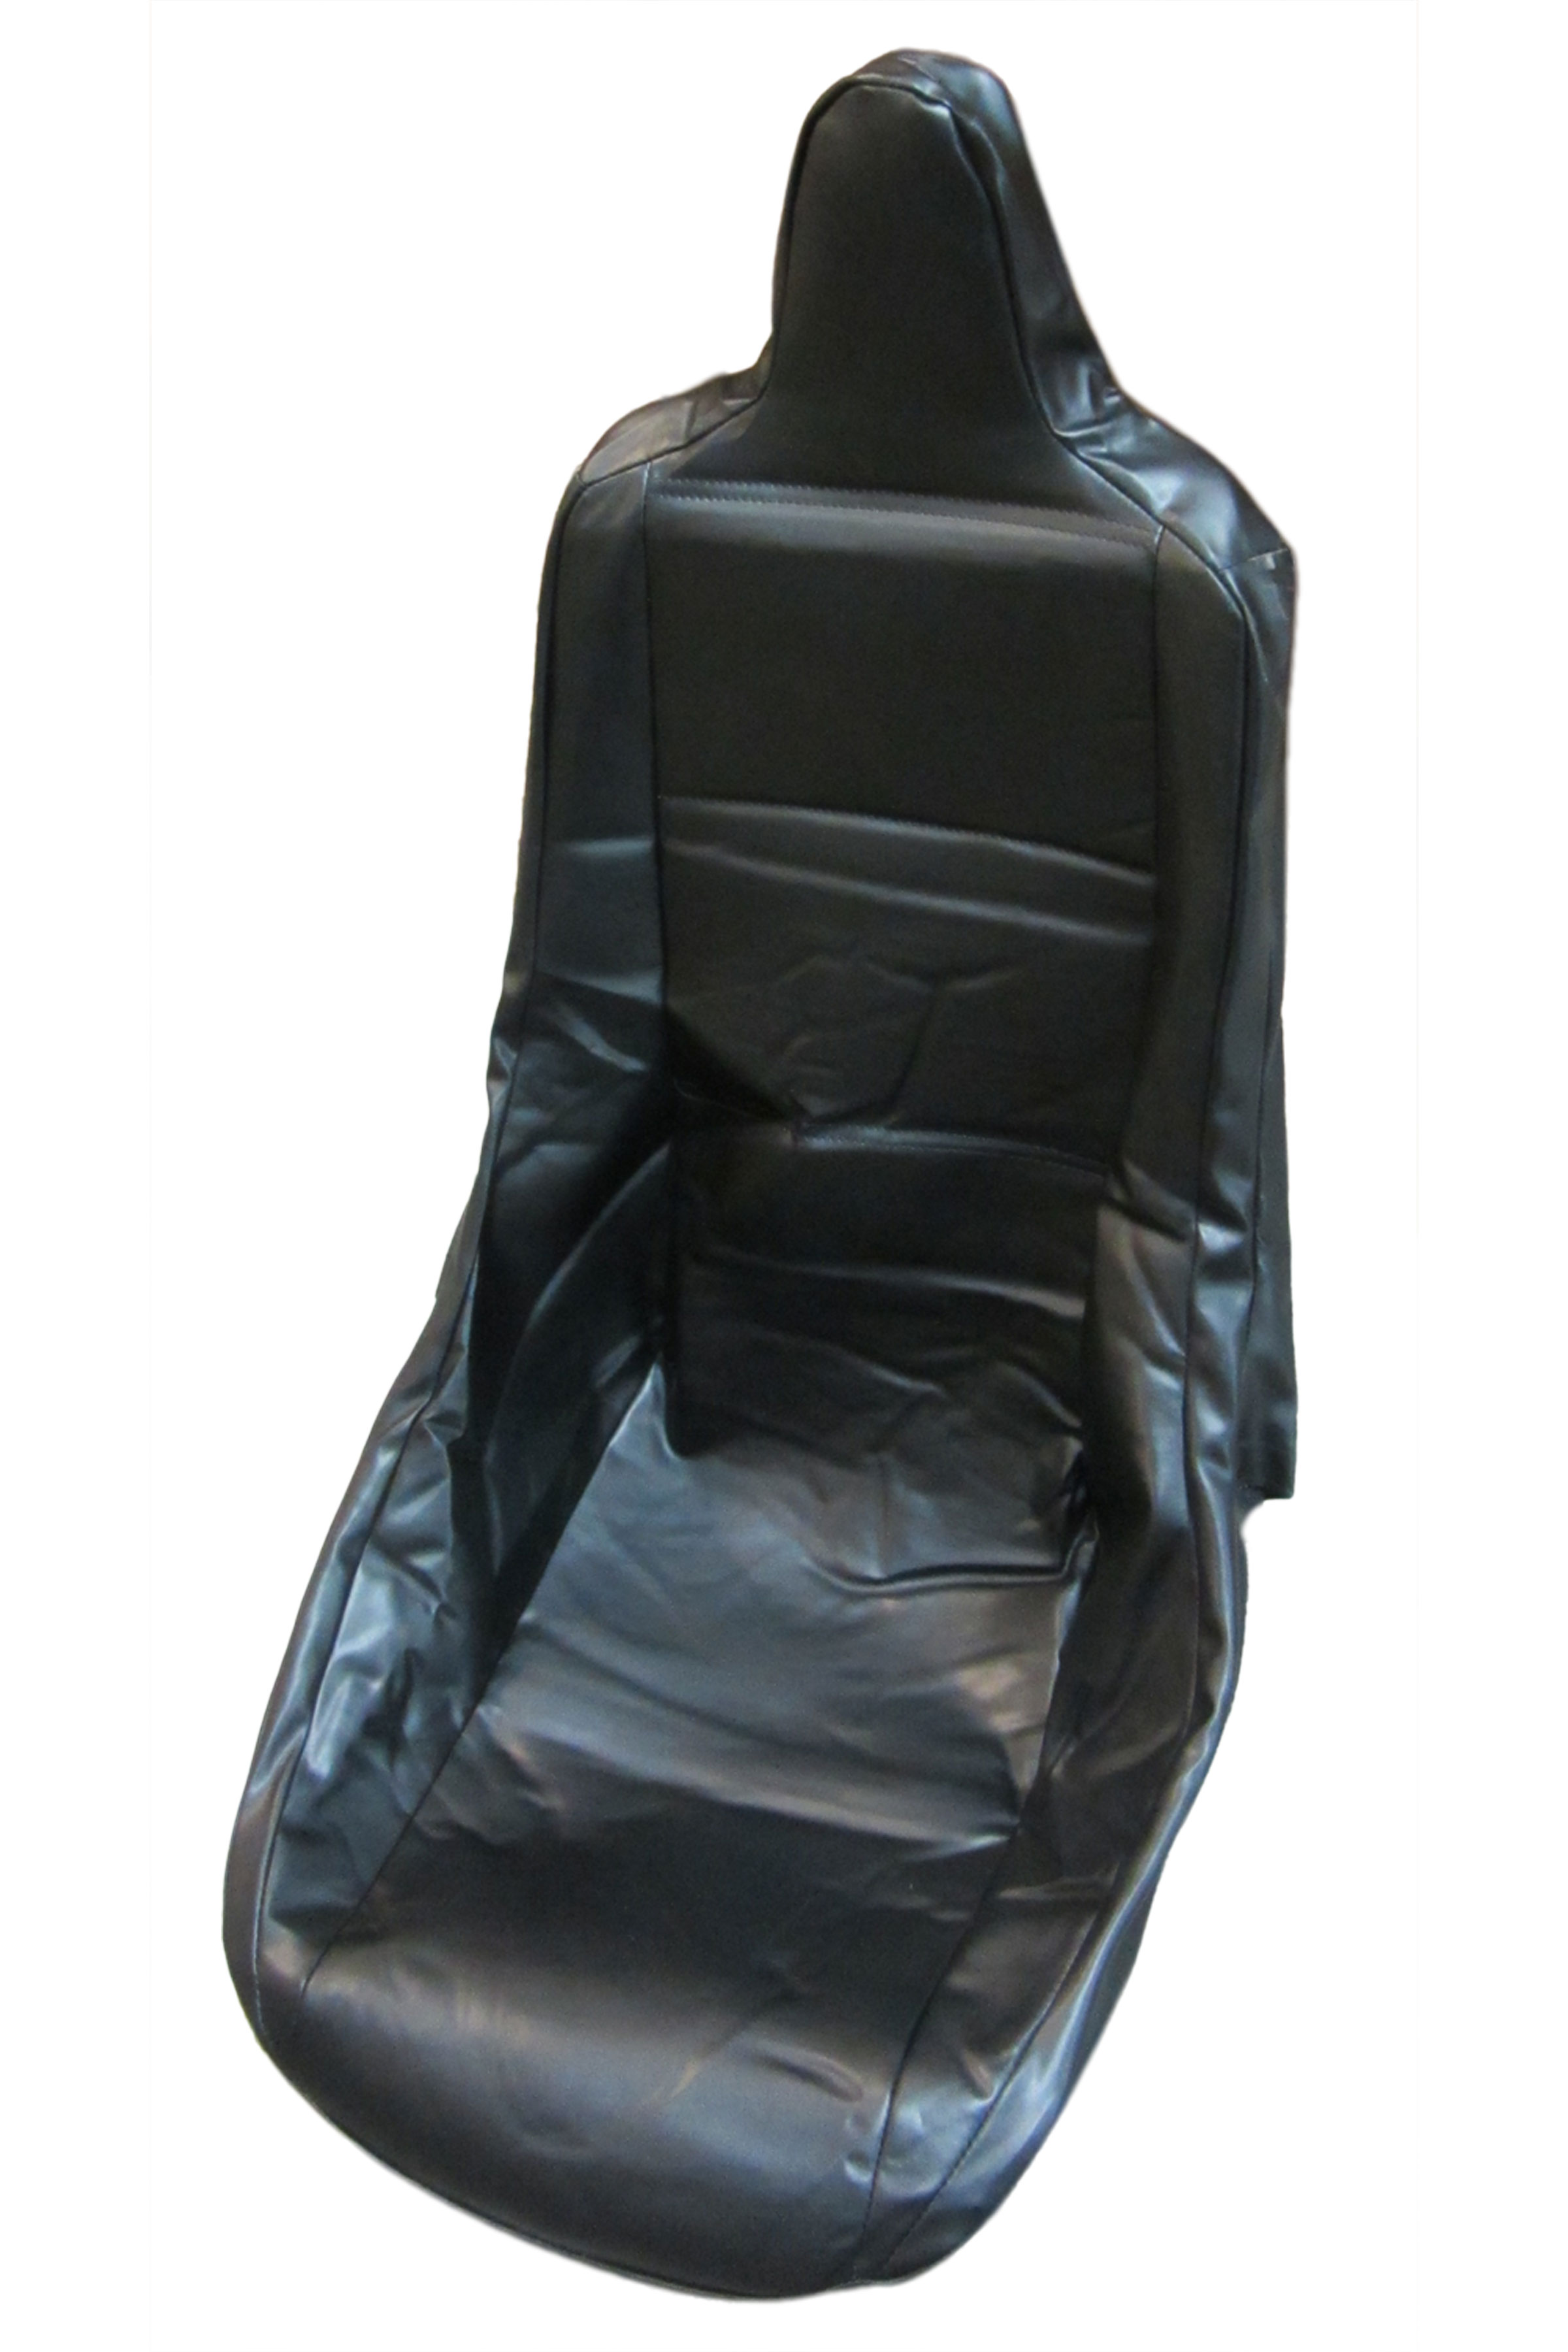 Go Kart Seats Padded : Seat cover for yerf dog spiderbox bmi karts and